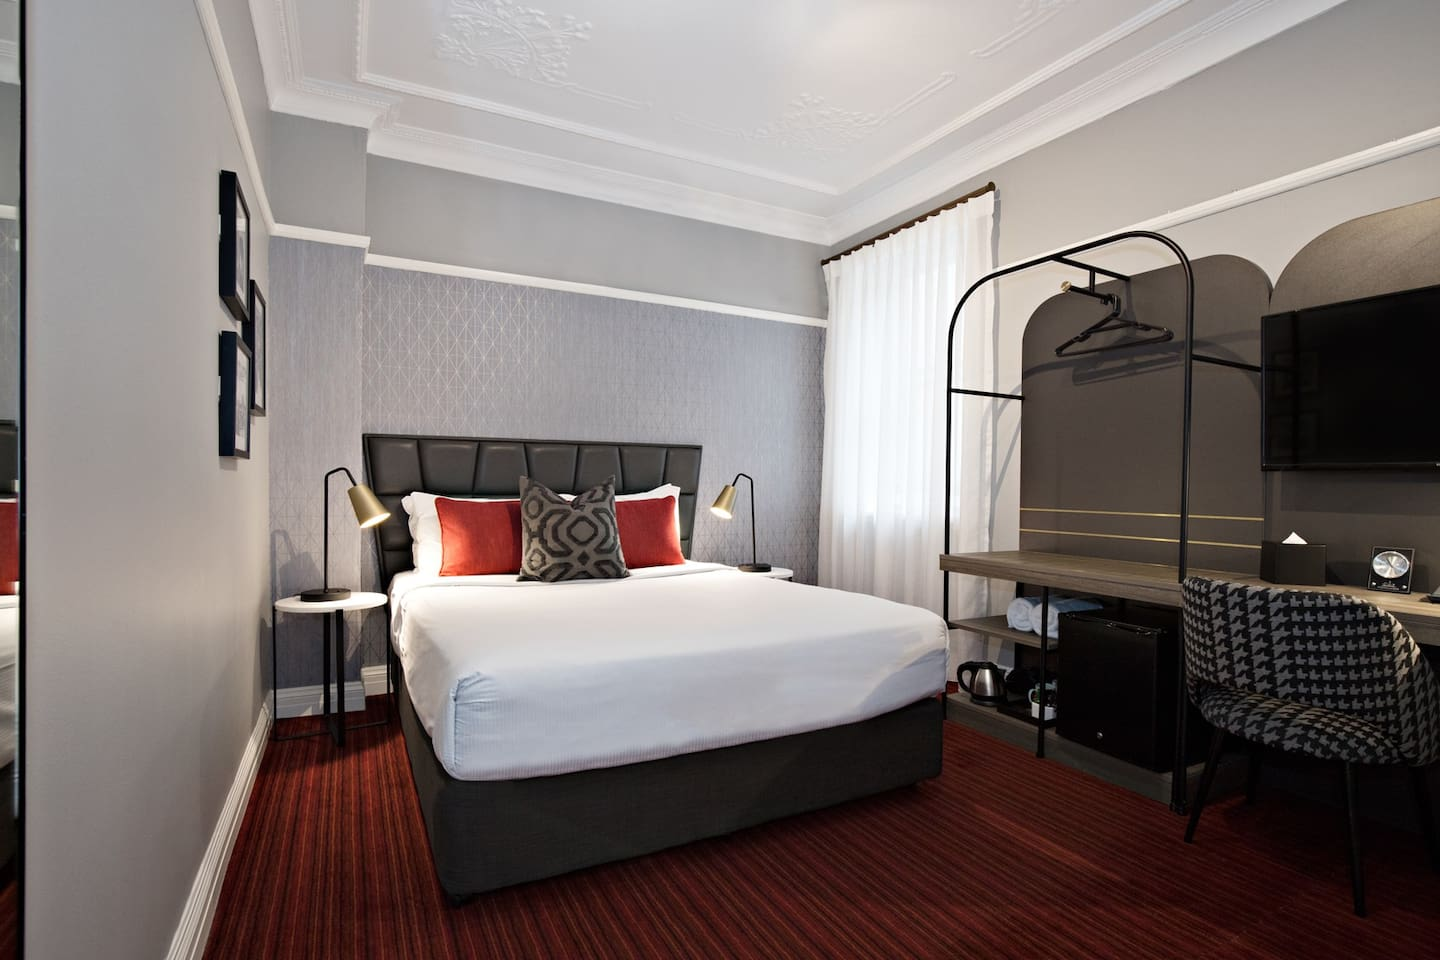 The Double Room is a comfortable option for two guests.